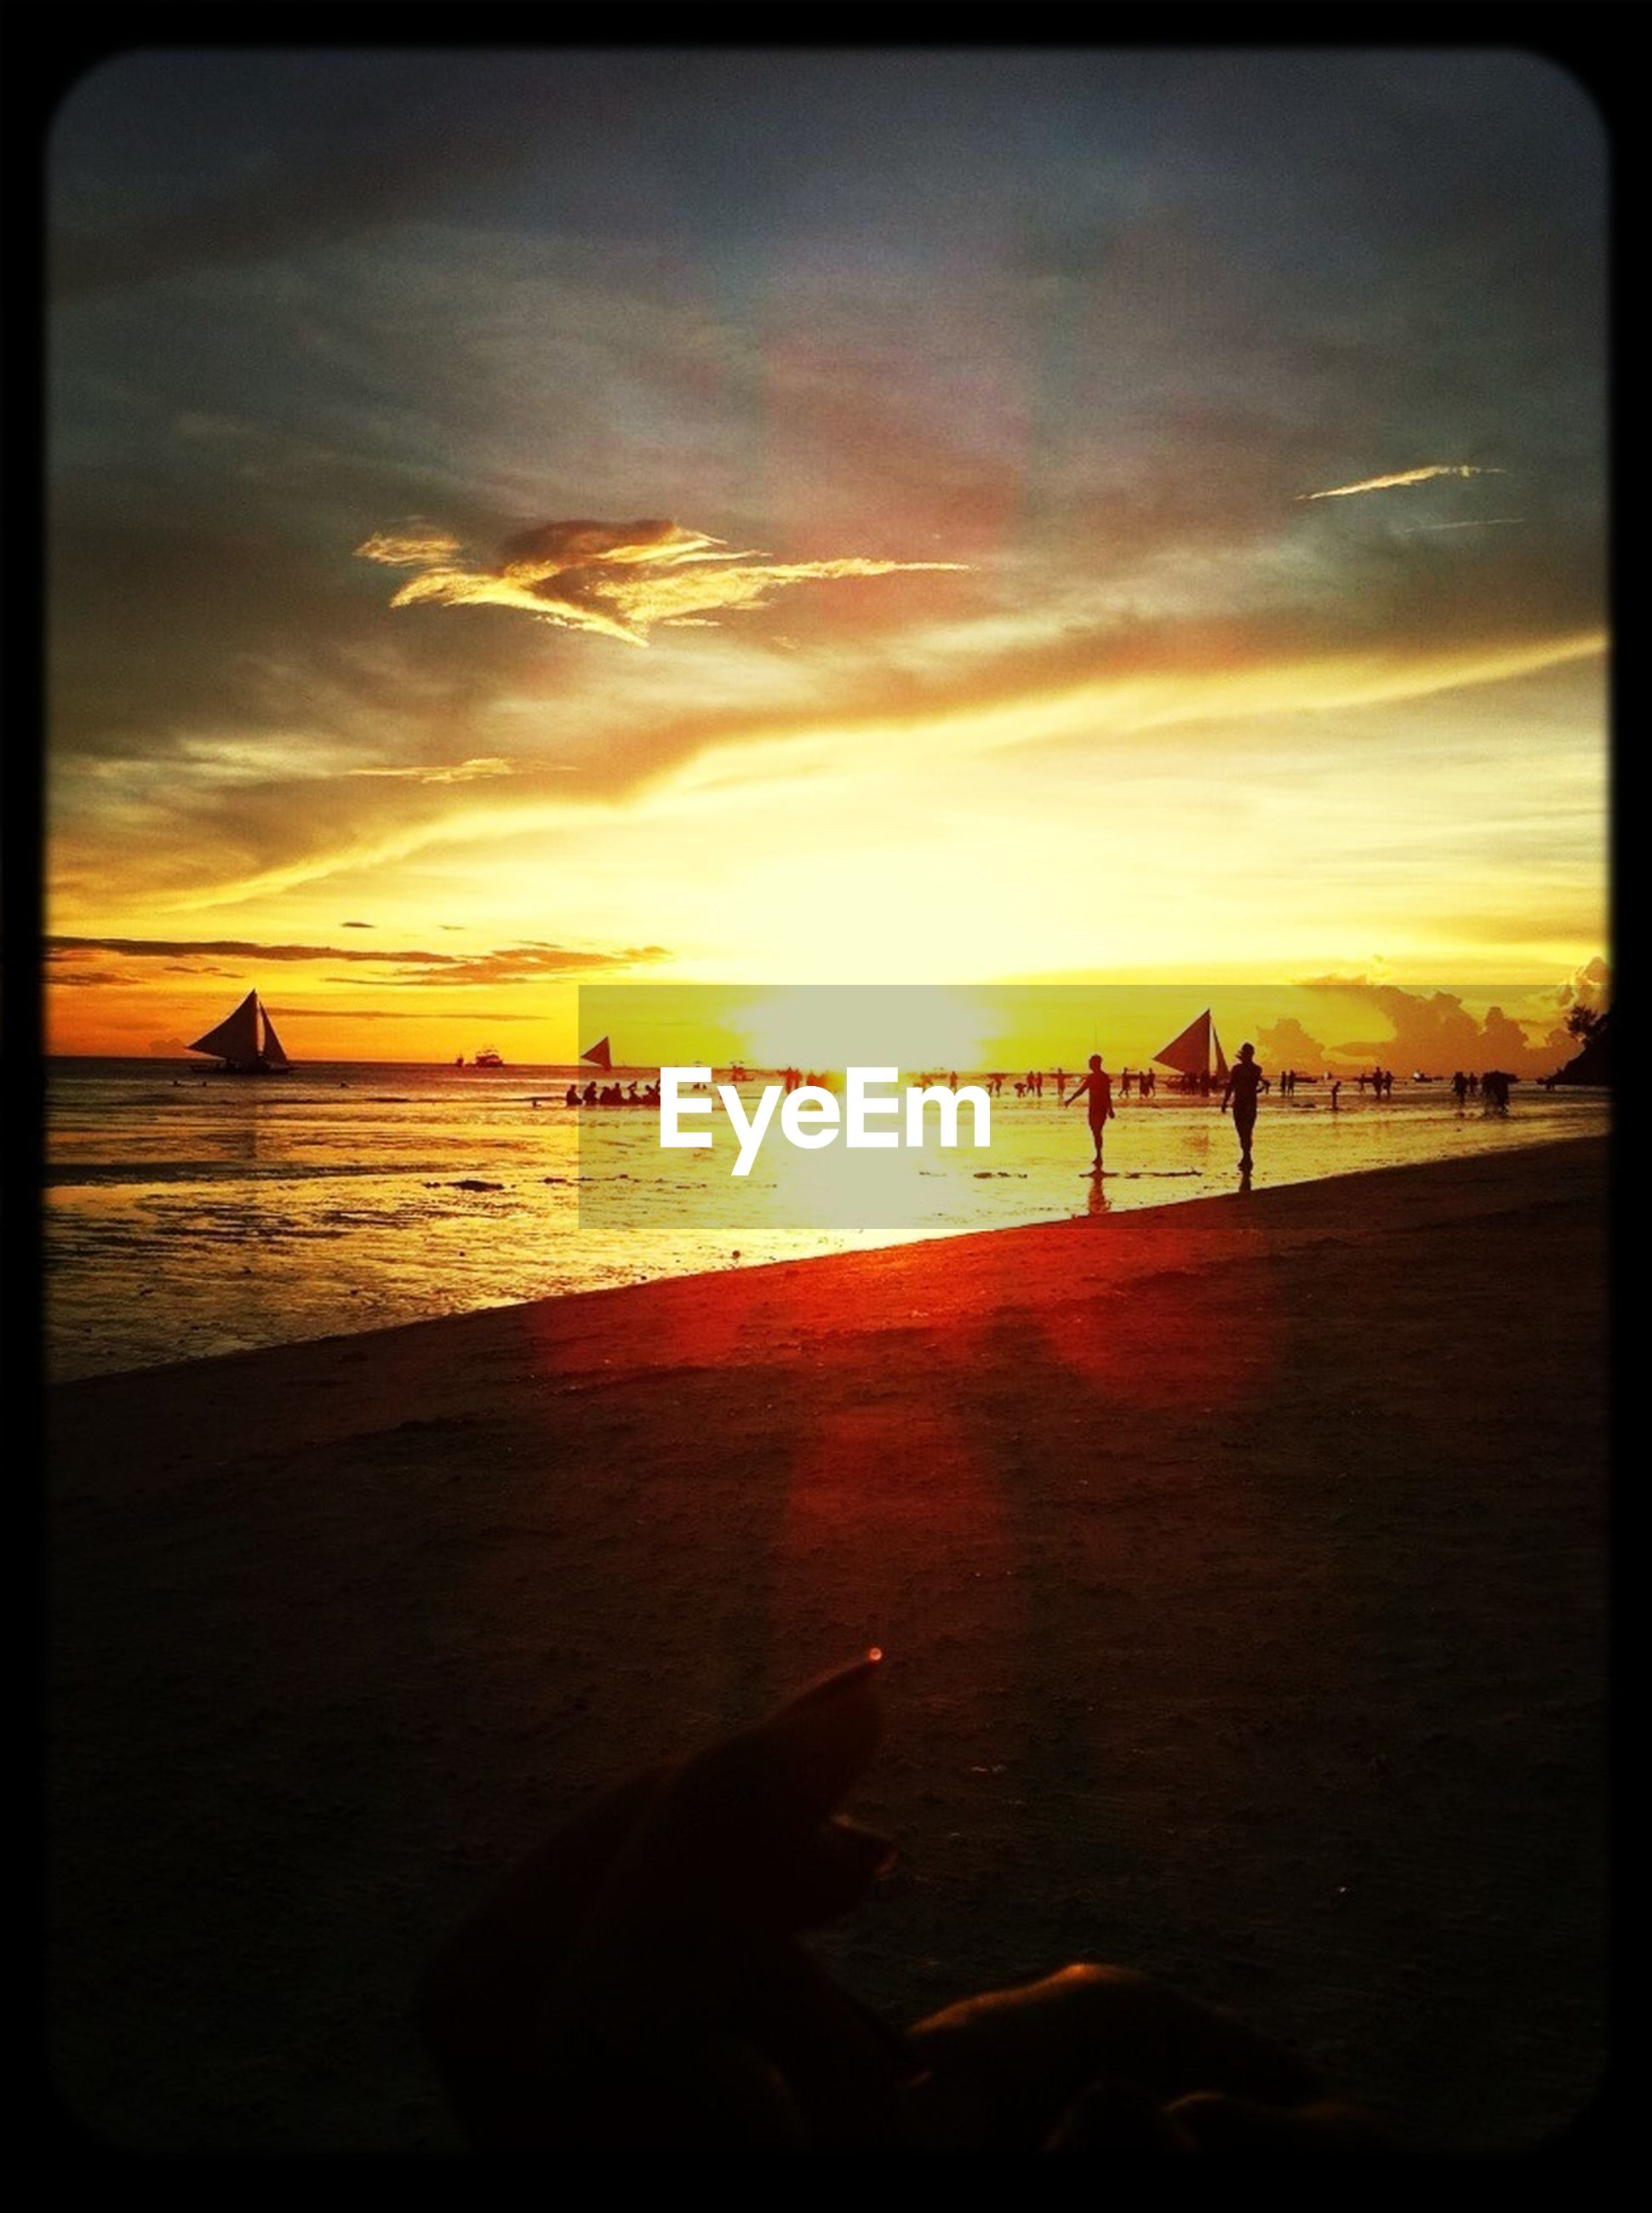 sunset, sea, sky, water, beach, horizon over water, transfer print, scenics, cloud - sky, beauty in nature, sand, shore, auto post production filter, orange color, tranquil scene, silhouette, transportation, tranquility, nature